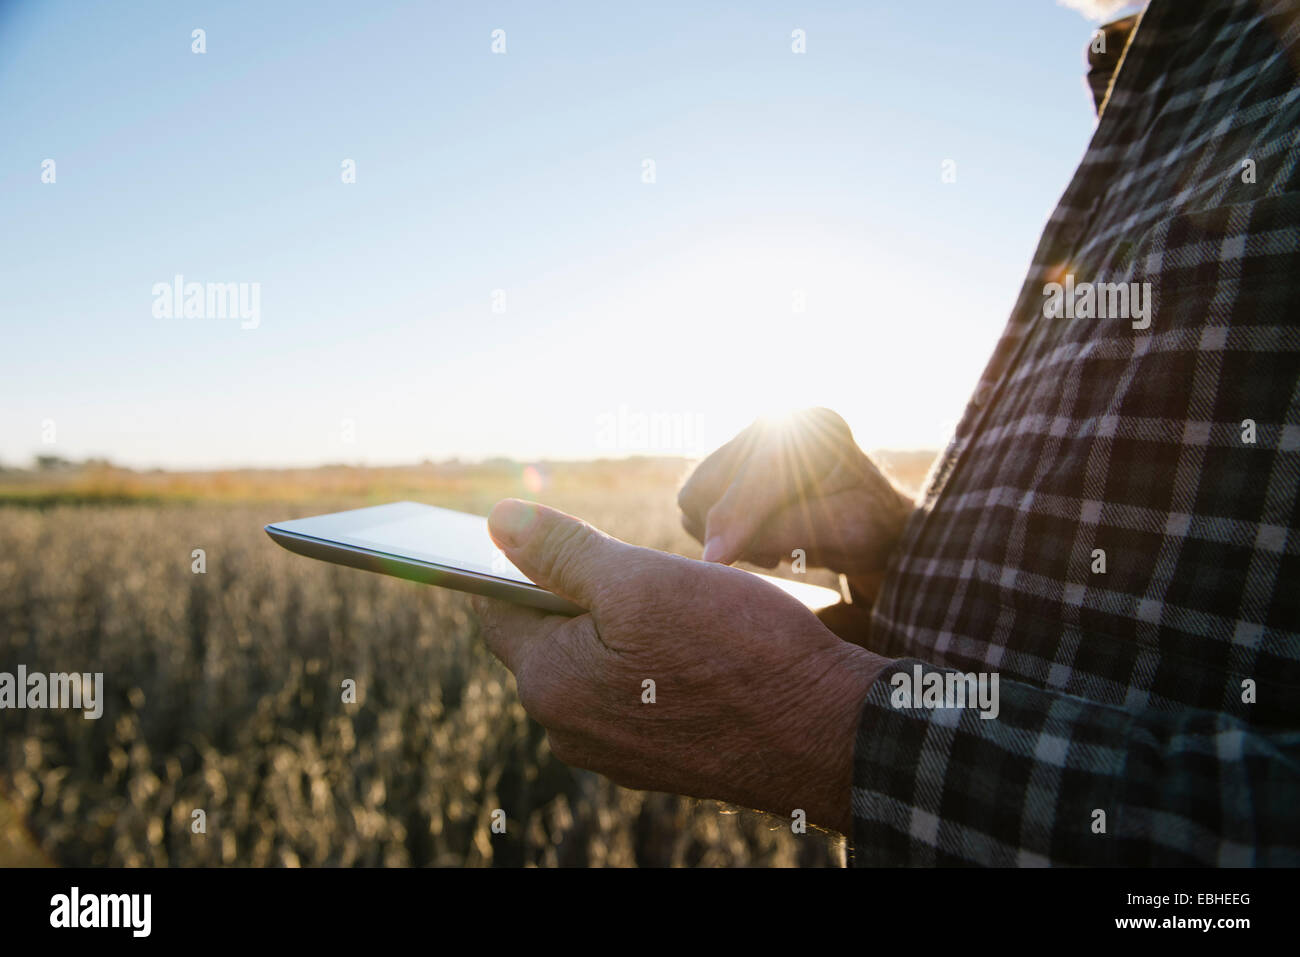 Captura recortada de altos agricultor usando tableta digital en el campo de soja, Plattsburg, Missouri, EE.UU. Imagen De Stock